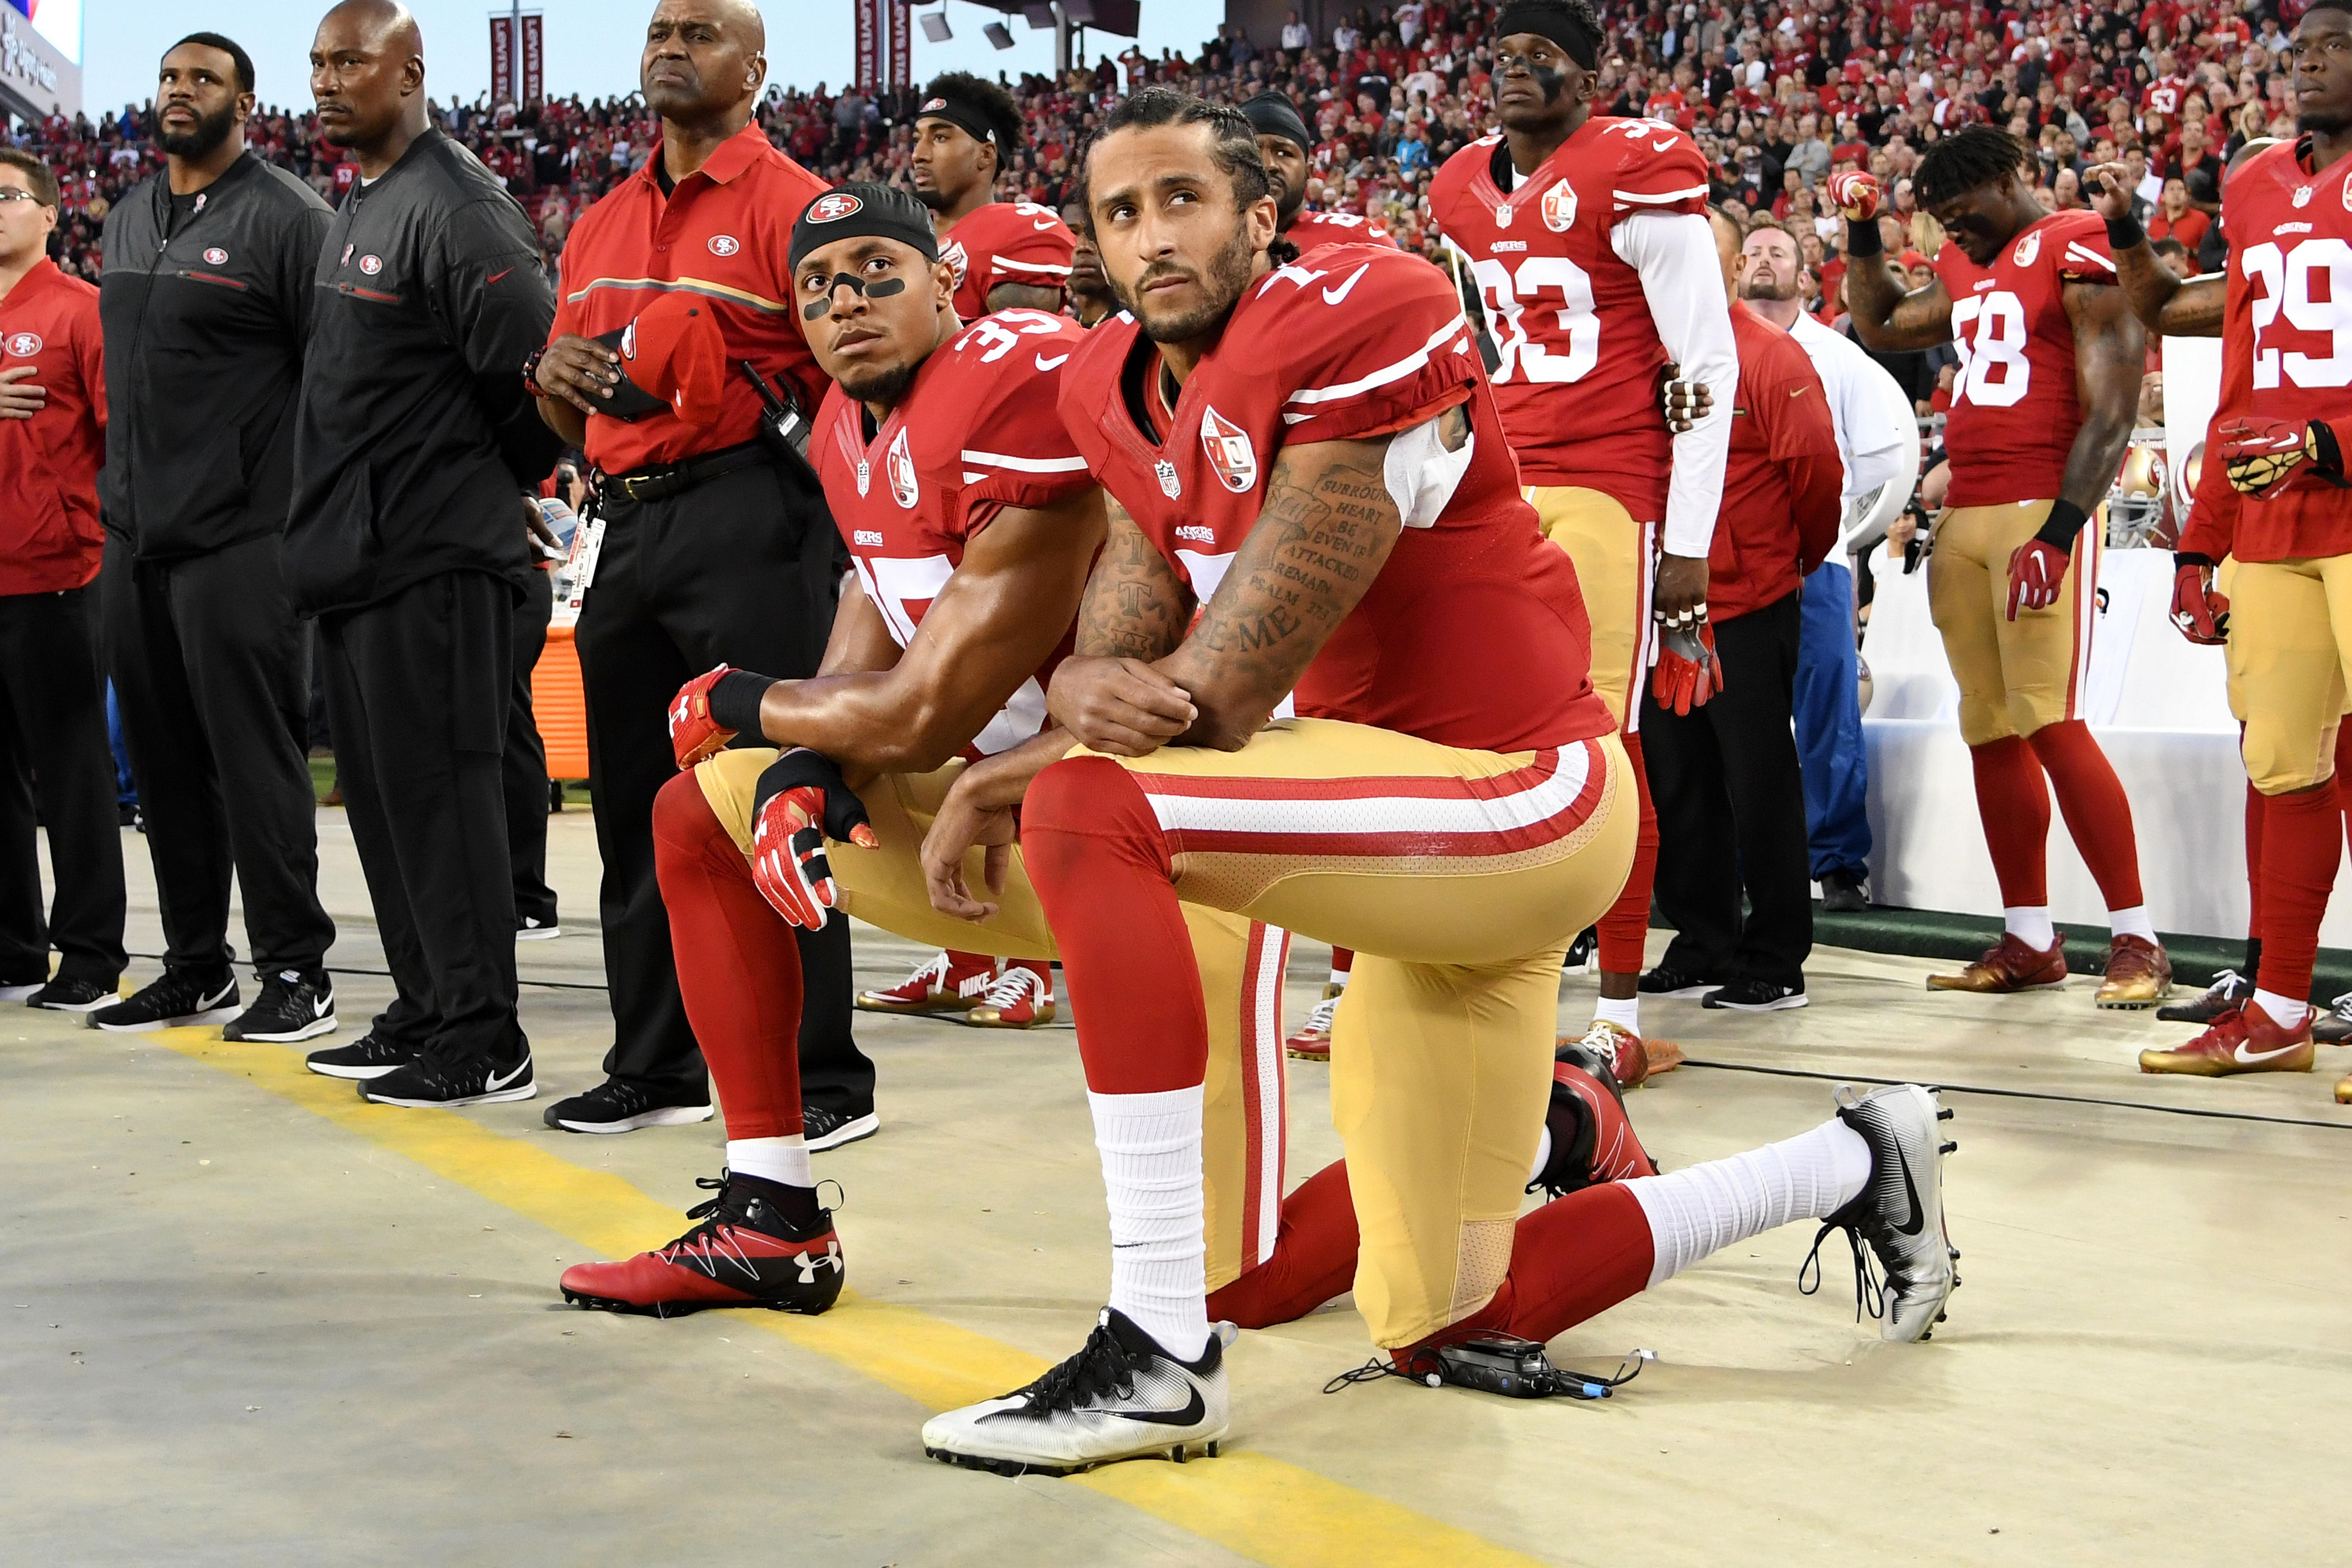 a39116bba NFL anthem policy sparks questions  Trump suggests kneeling players  shouldn t be in U.S.